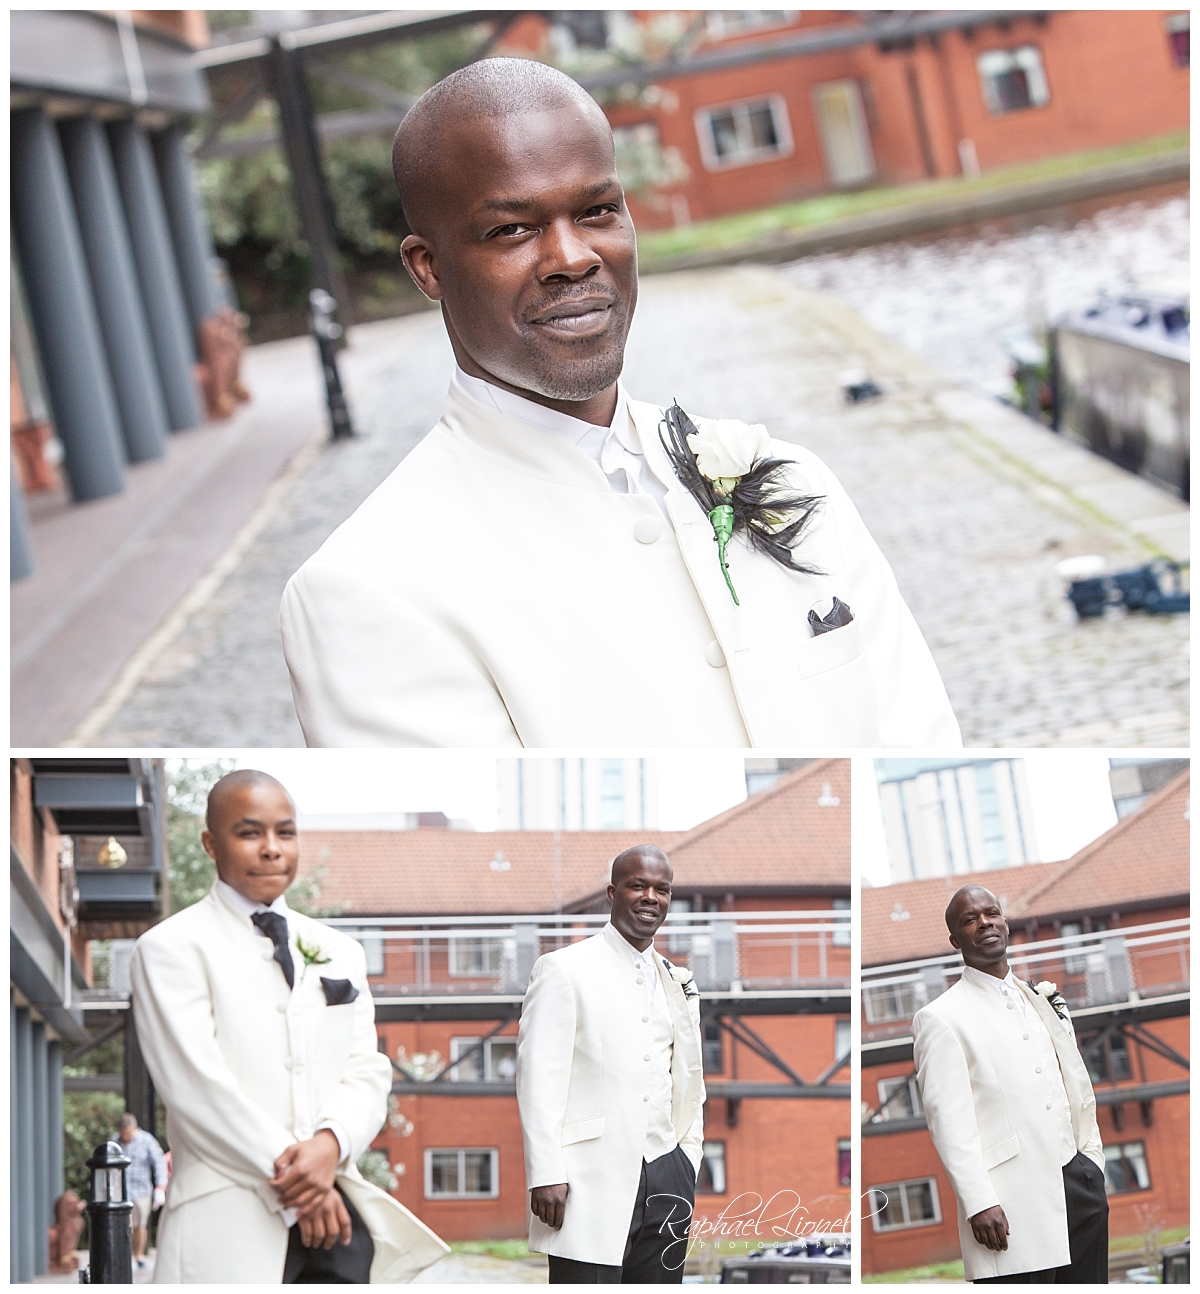 2018 04 08 0005 - City Wedding Birmingham | Dauntley and Simone